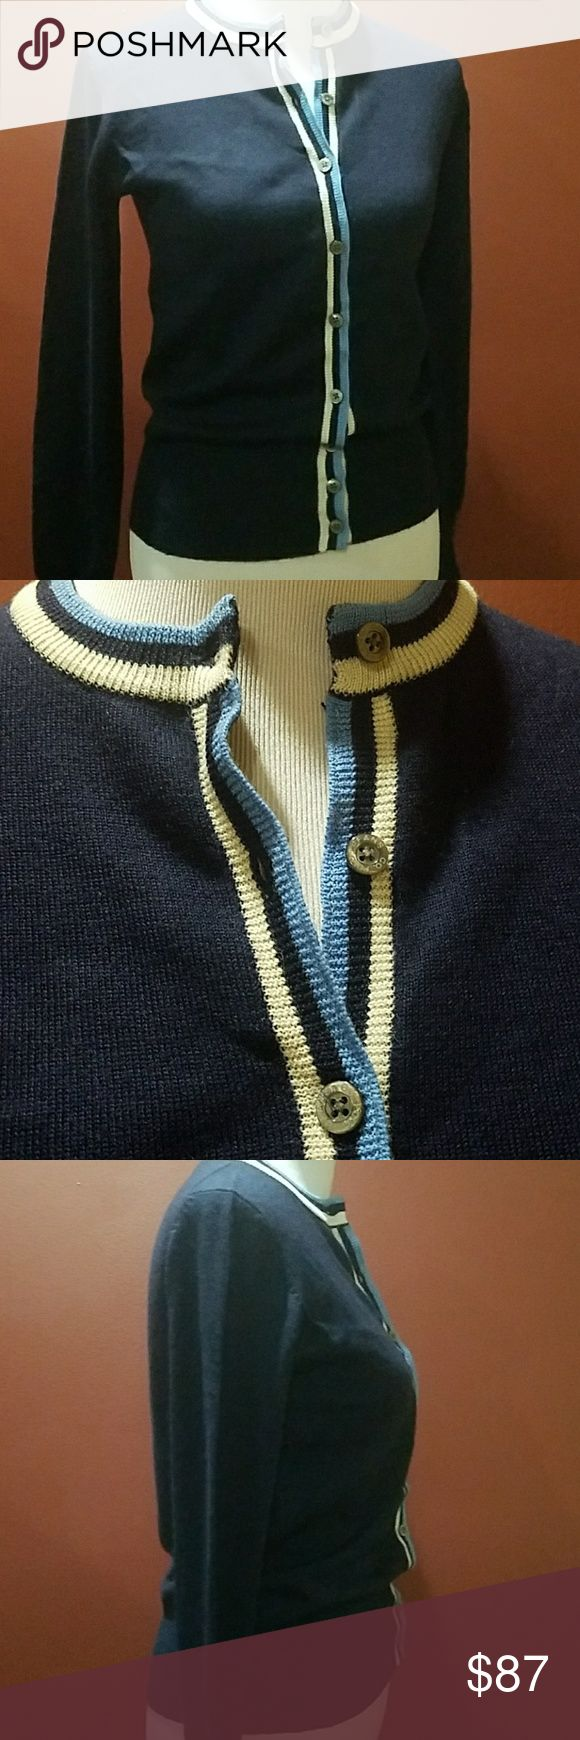 """Polo Jeans Co. 100% wool cardigan Polo Jeans Co. 100% wool cardigan in EUC measures bust 32"""" waist 28"""" sleeves 25"""" with the ability to make a cuffed sleeve to shorten it and is 23"""" total in length. Polo by Ralph Lauren Sweaters Cardigans"""